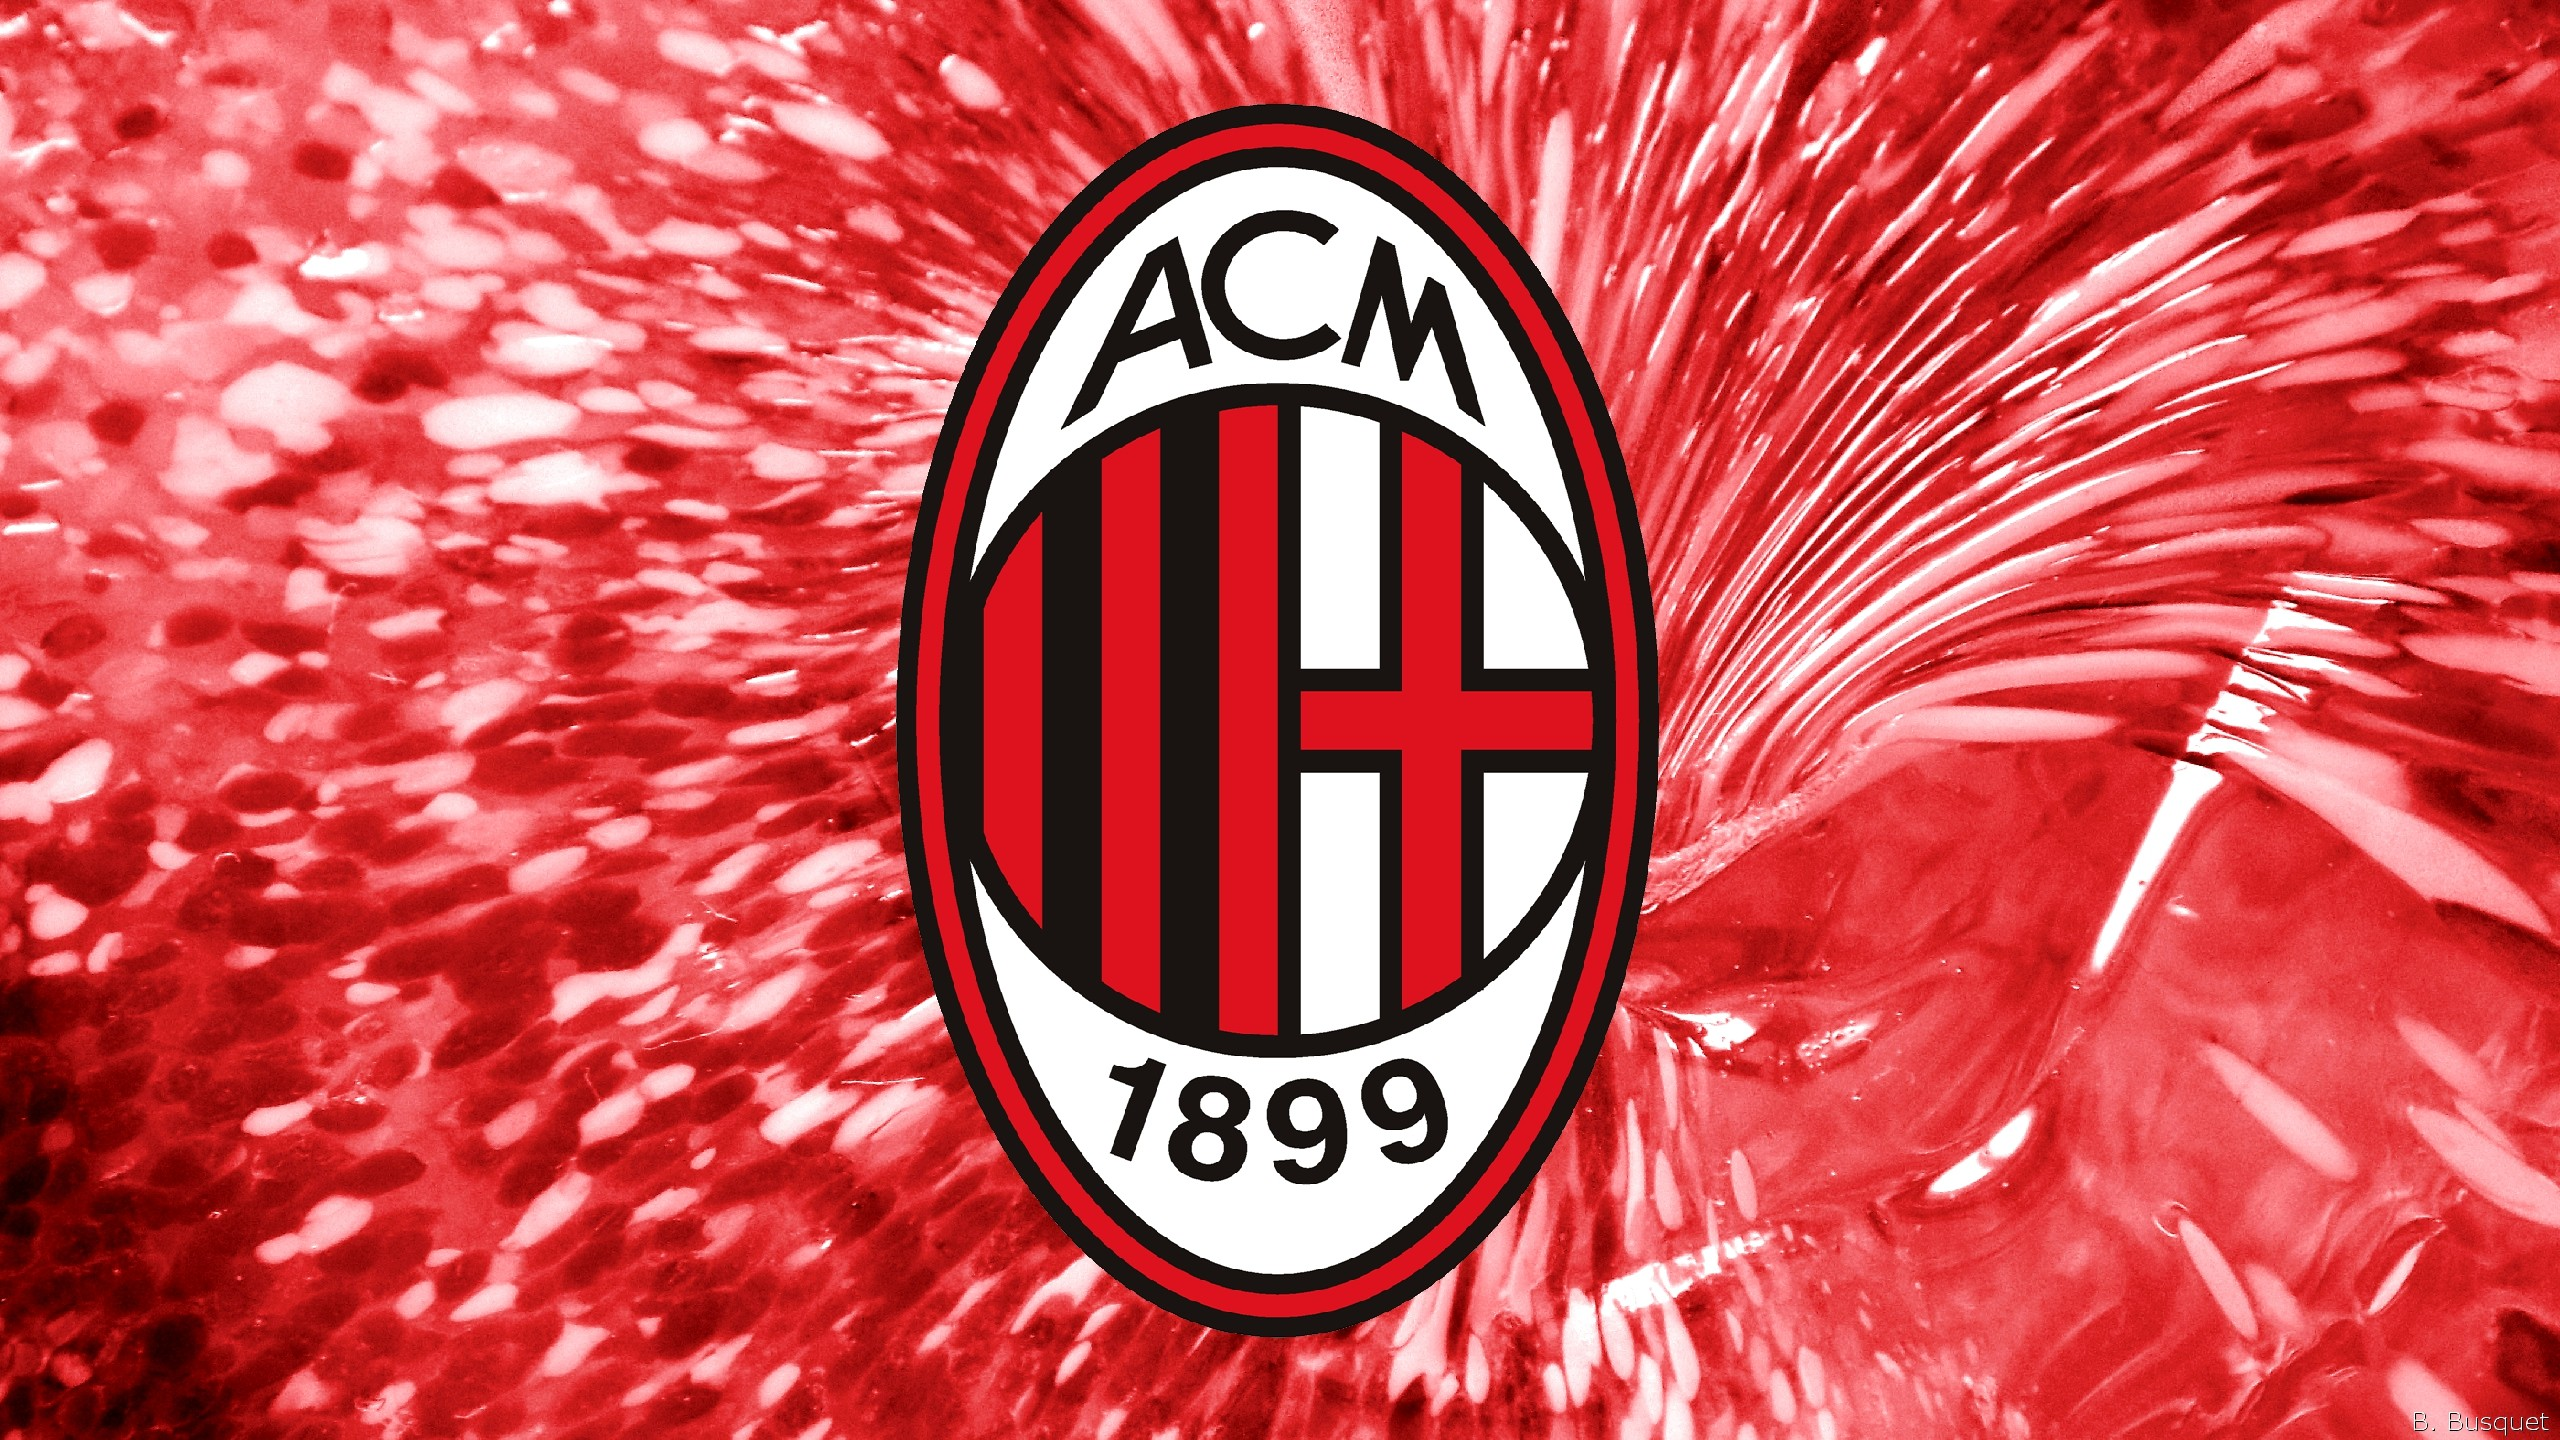 w ac milan it - photo#13